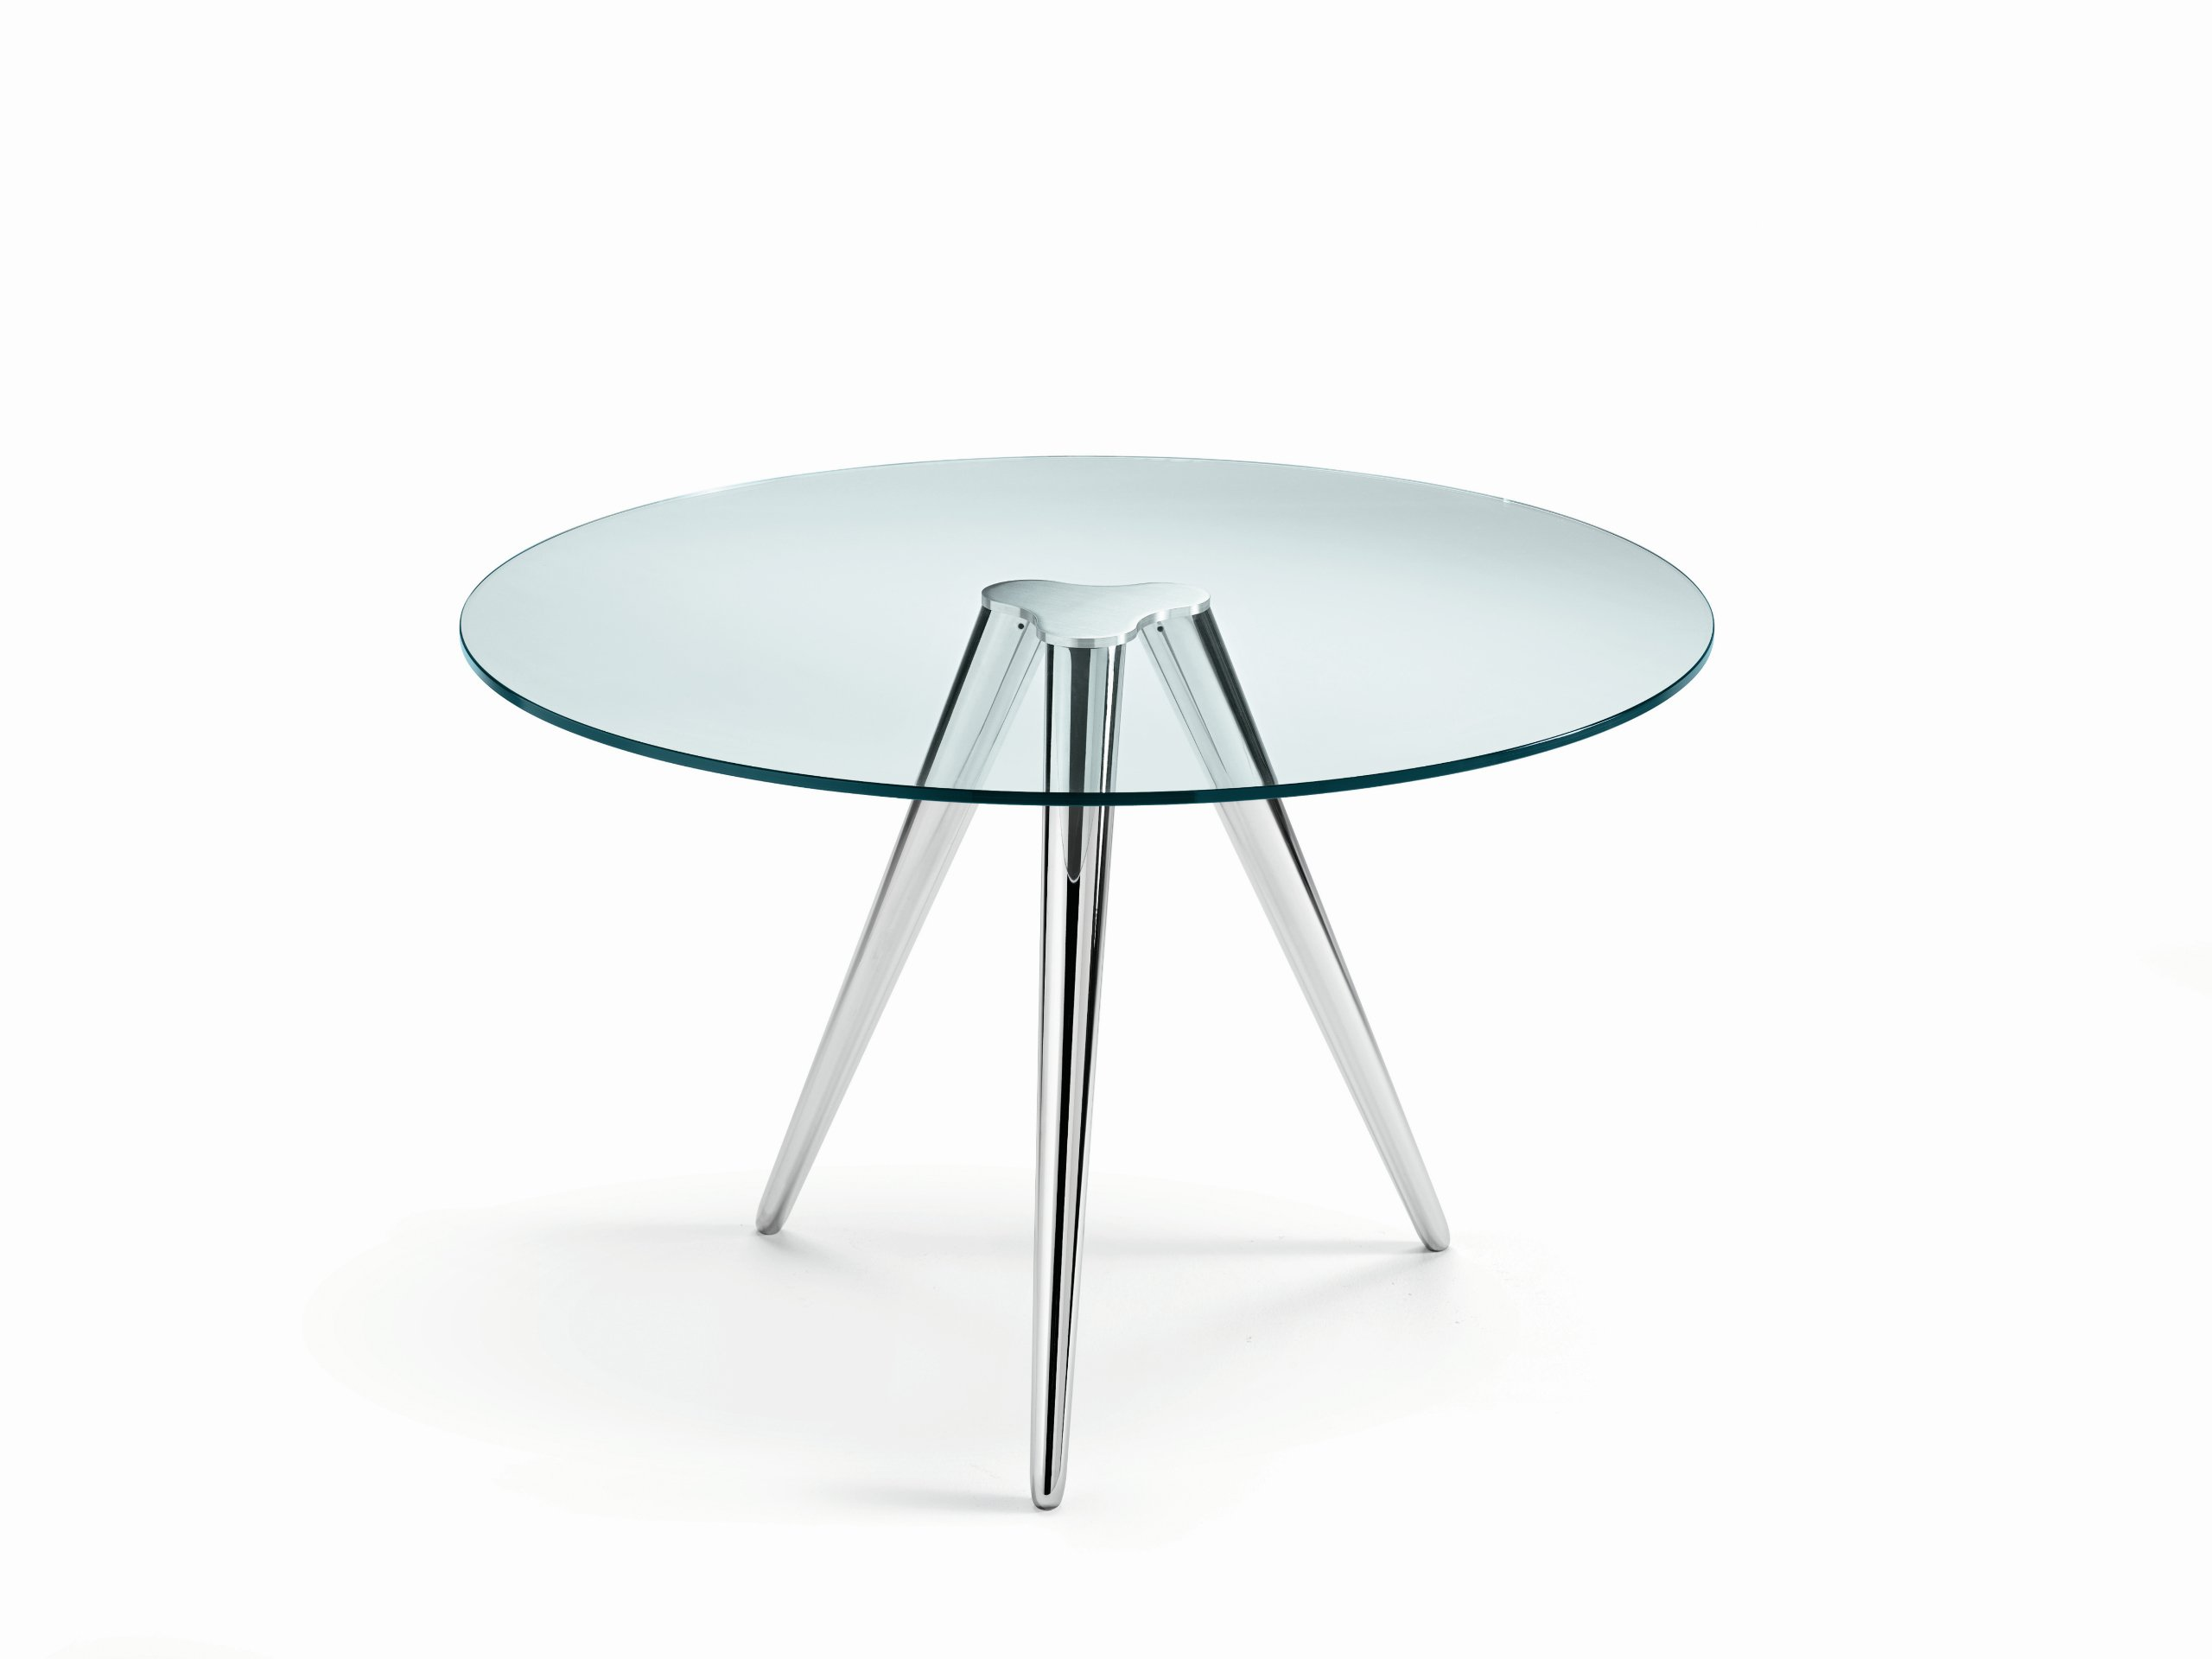 Round glass table unity by t d tonelli design design - Tables rondes en verre ...